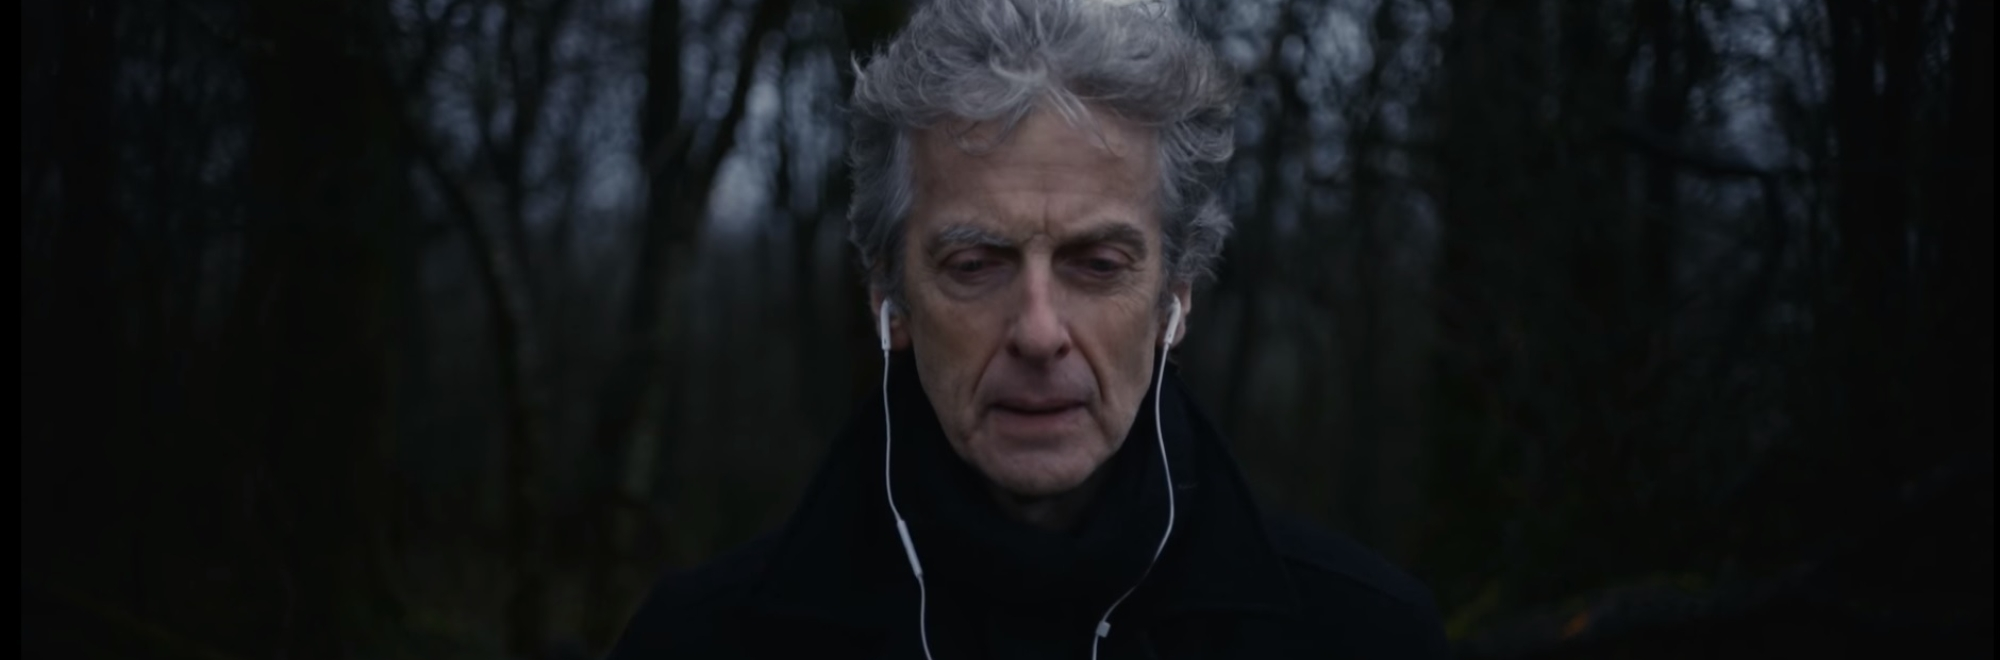 Why this powerful Lewis Capaldi music video starring Peter Capaldi is a hit for organ-donation charities